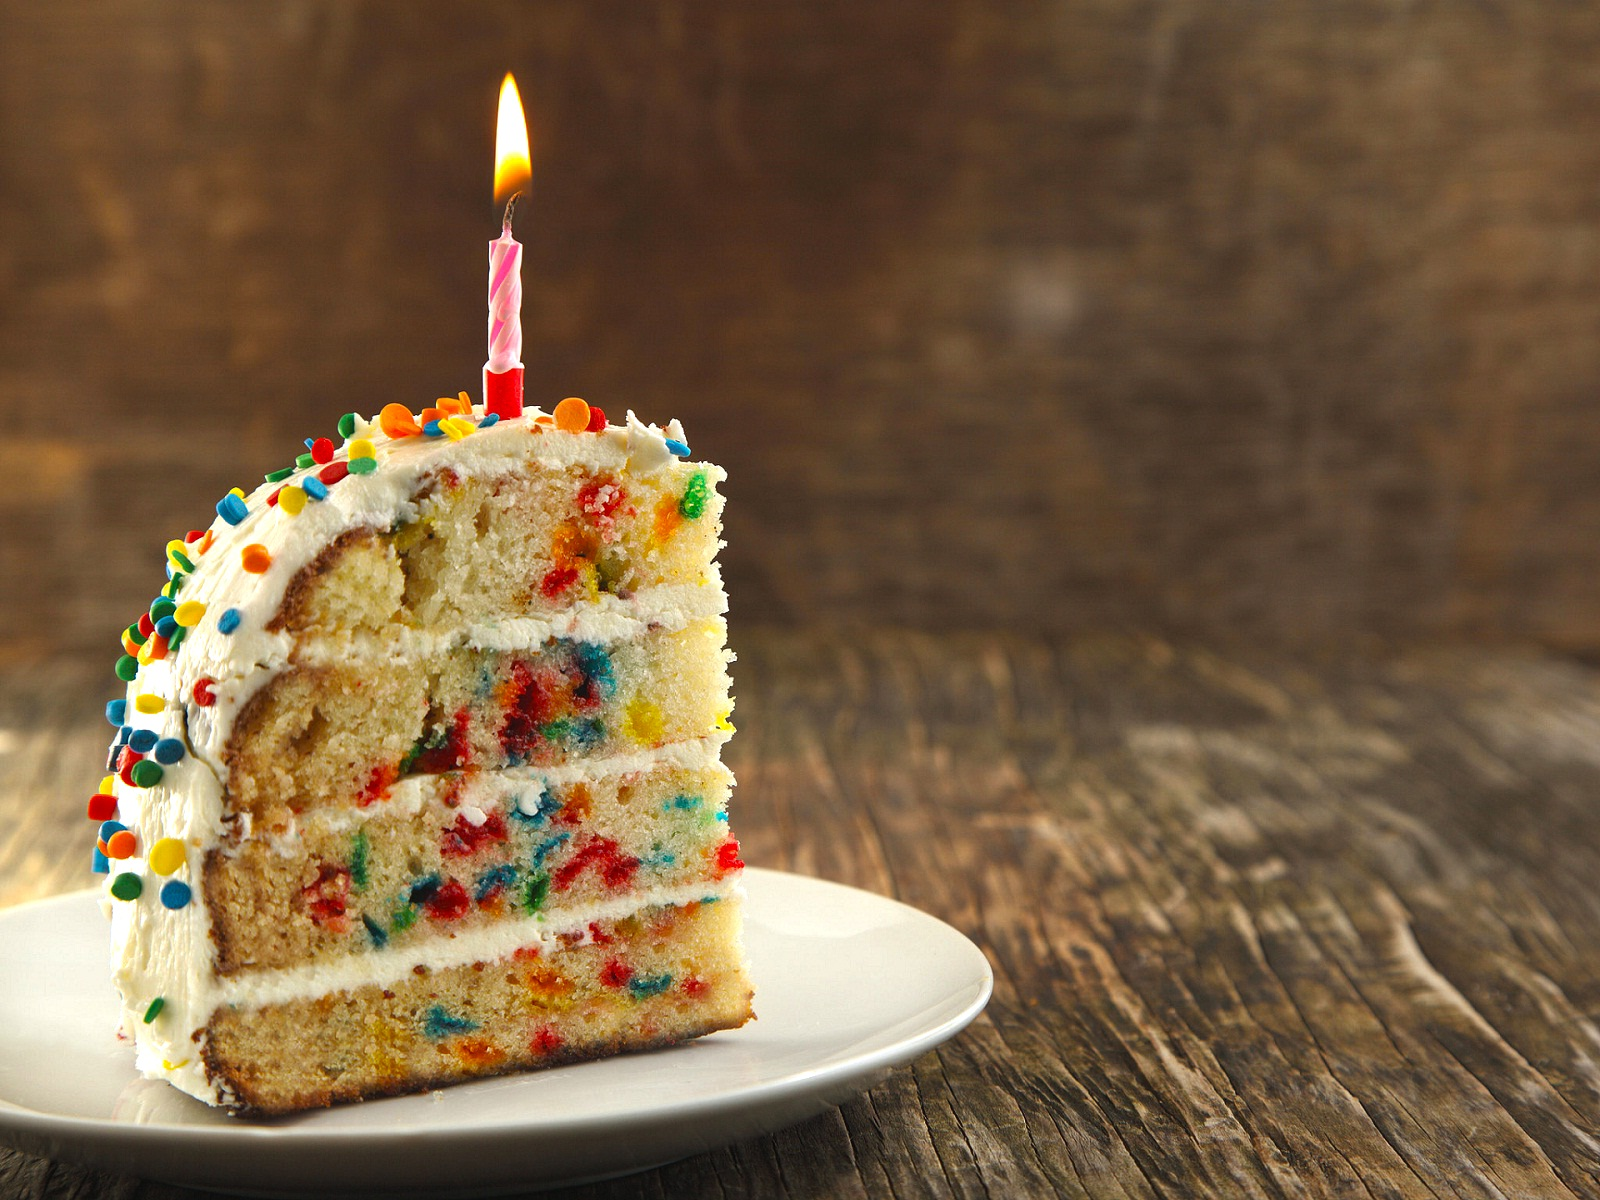 Latest Birthday Cake Hd Images : happy-birthday-cake-hd-wallpaper - The Resilience Post